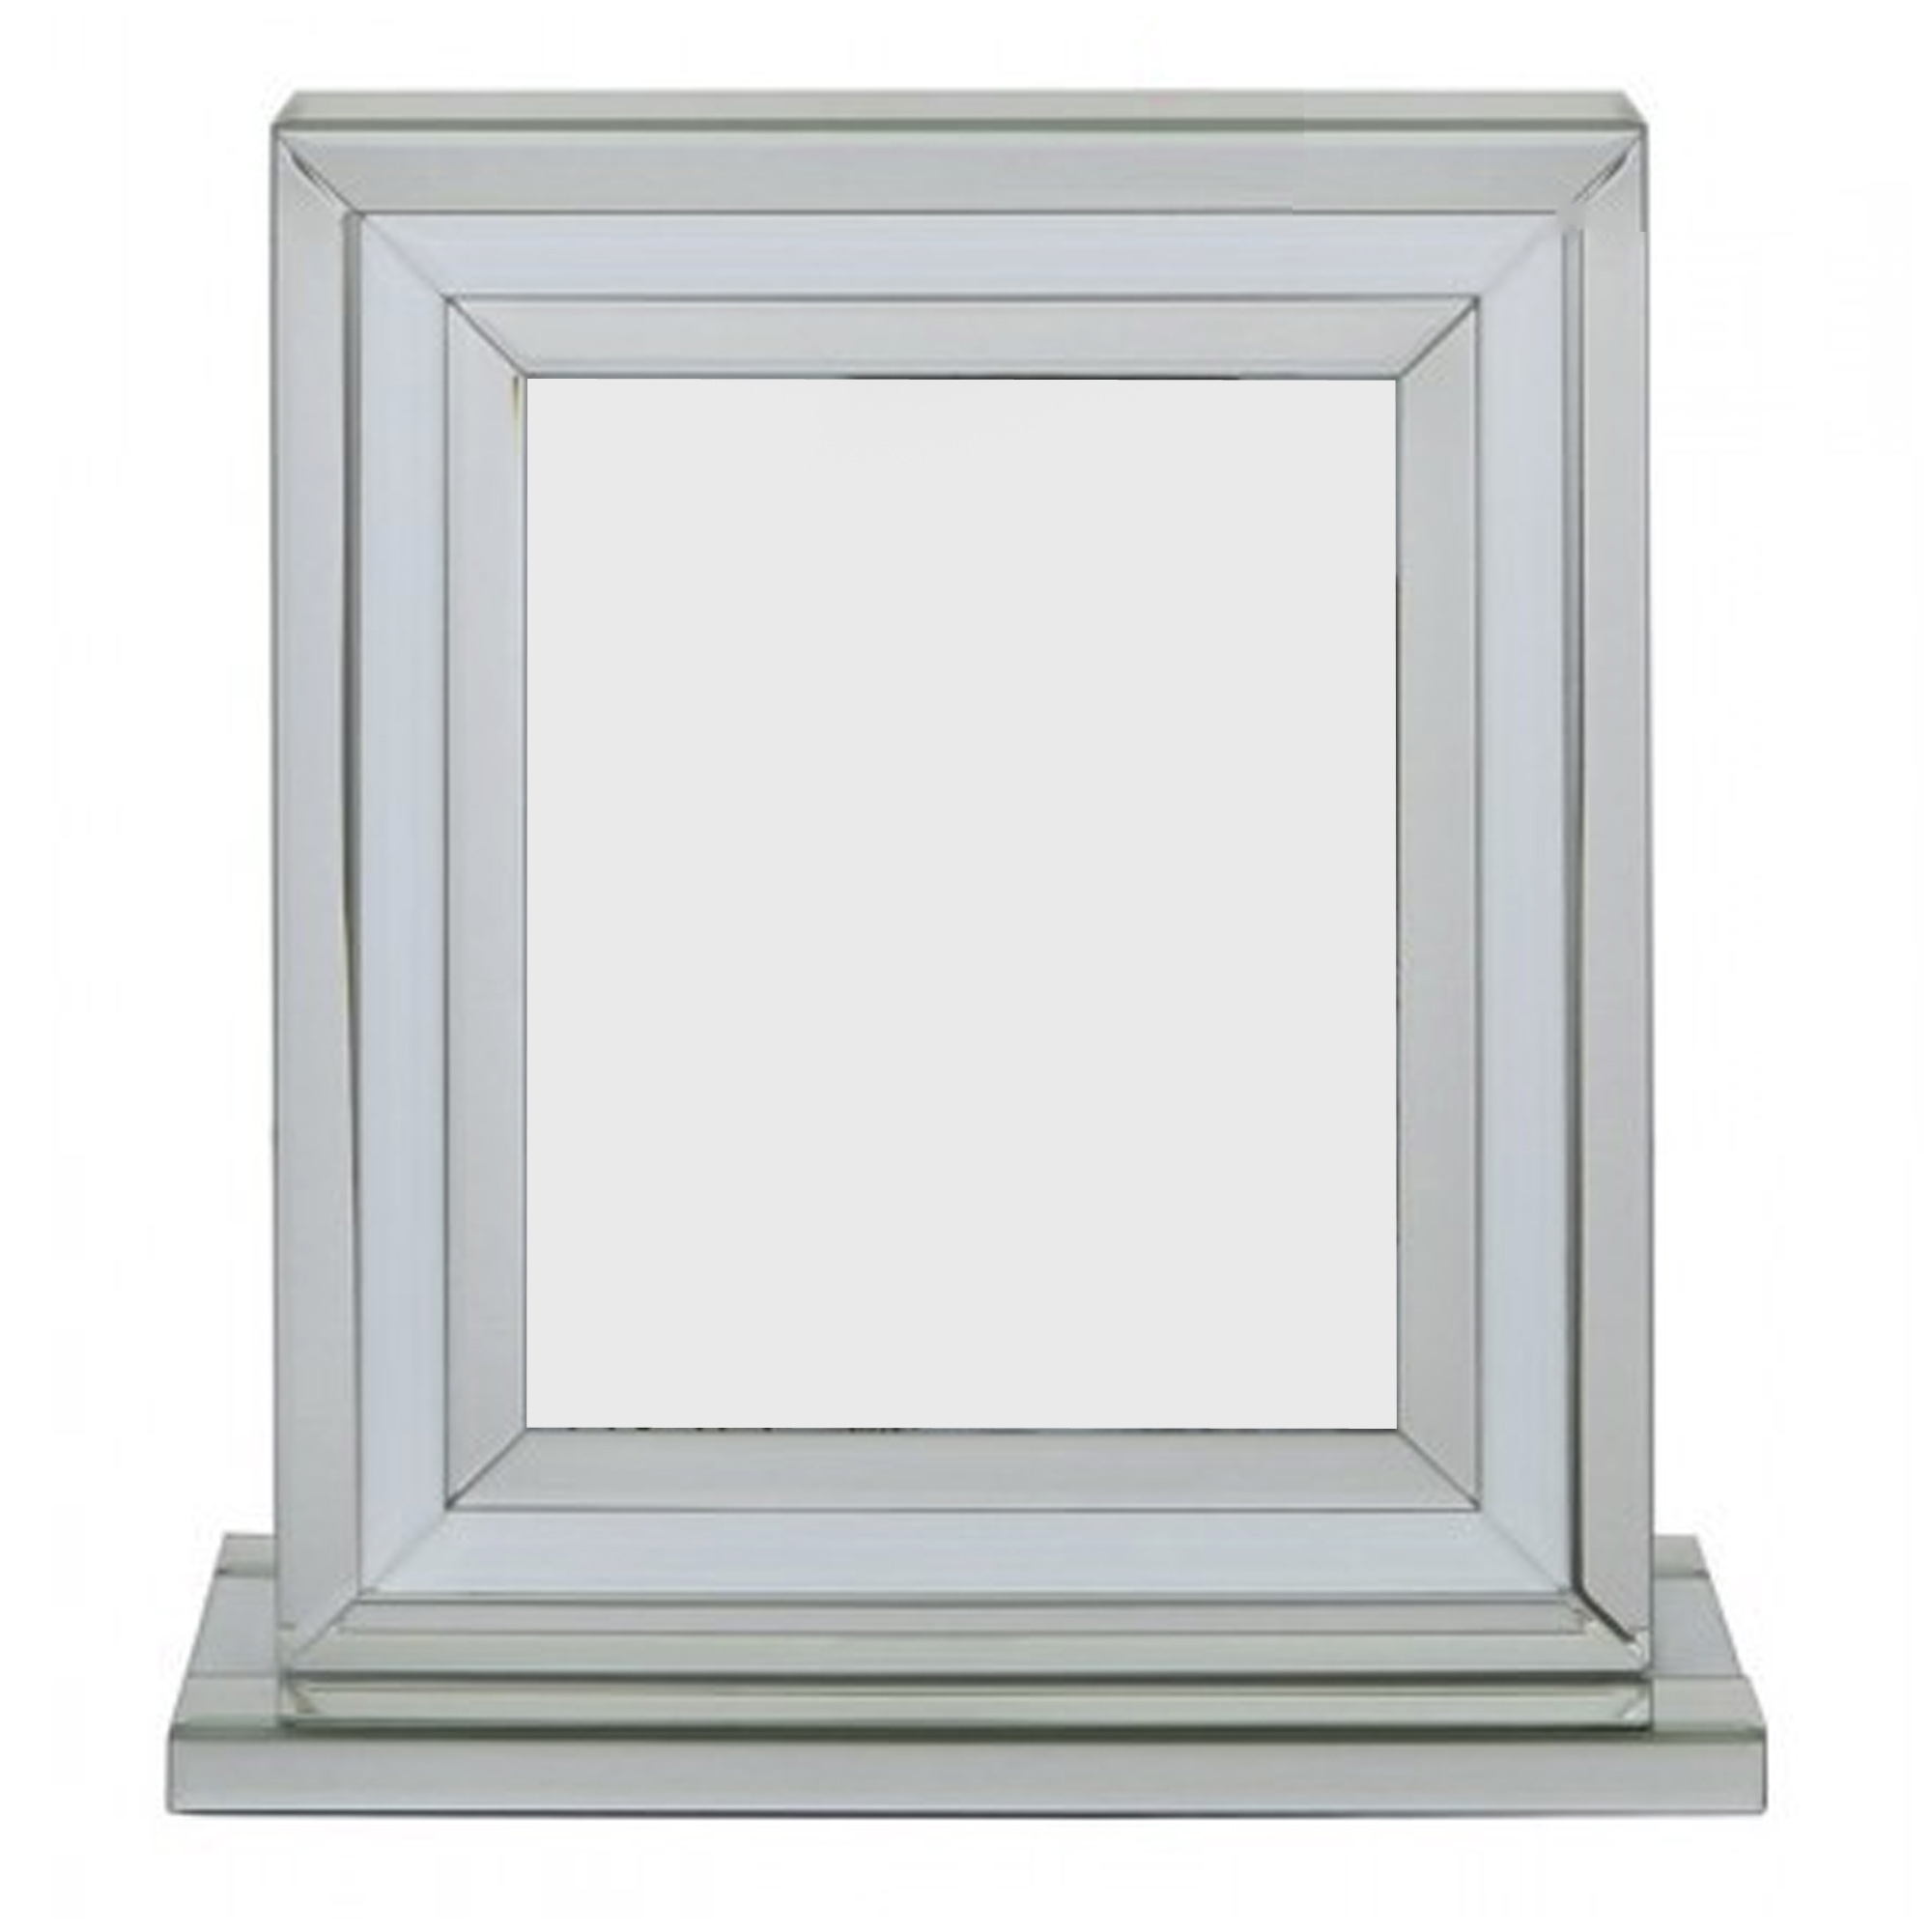 Large Frame Picture Alghero White Large Mirrored Photo Frame